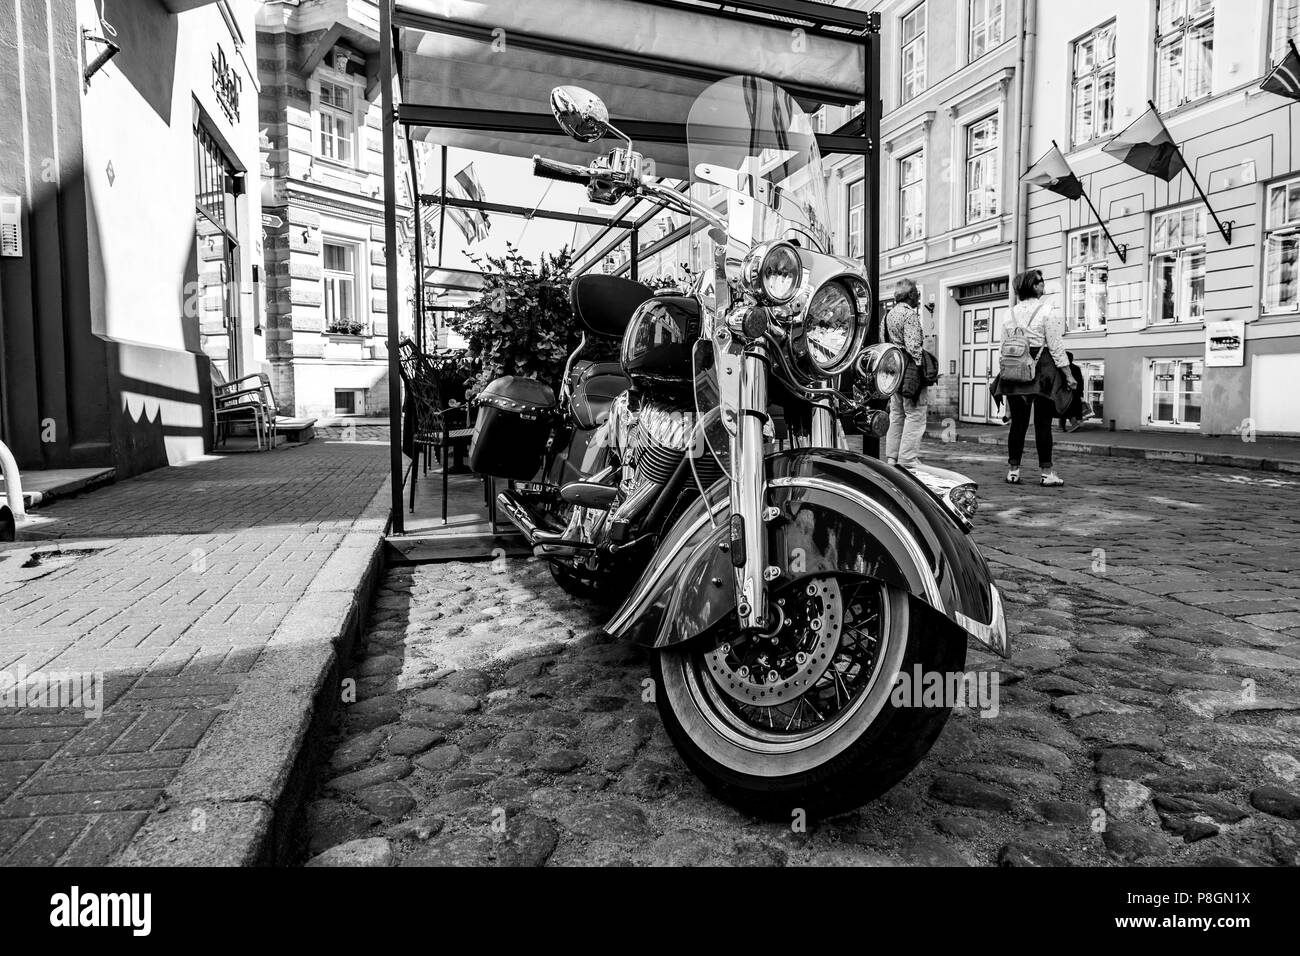 Bmw motorcycle in the street of Tallin, Estonia - Stock Image